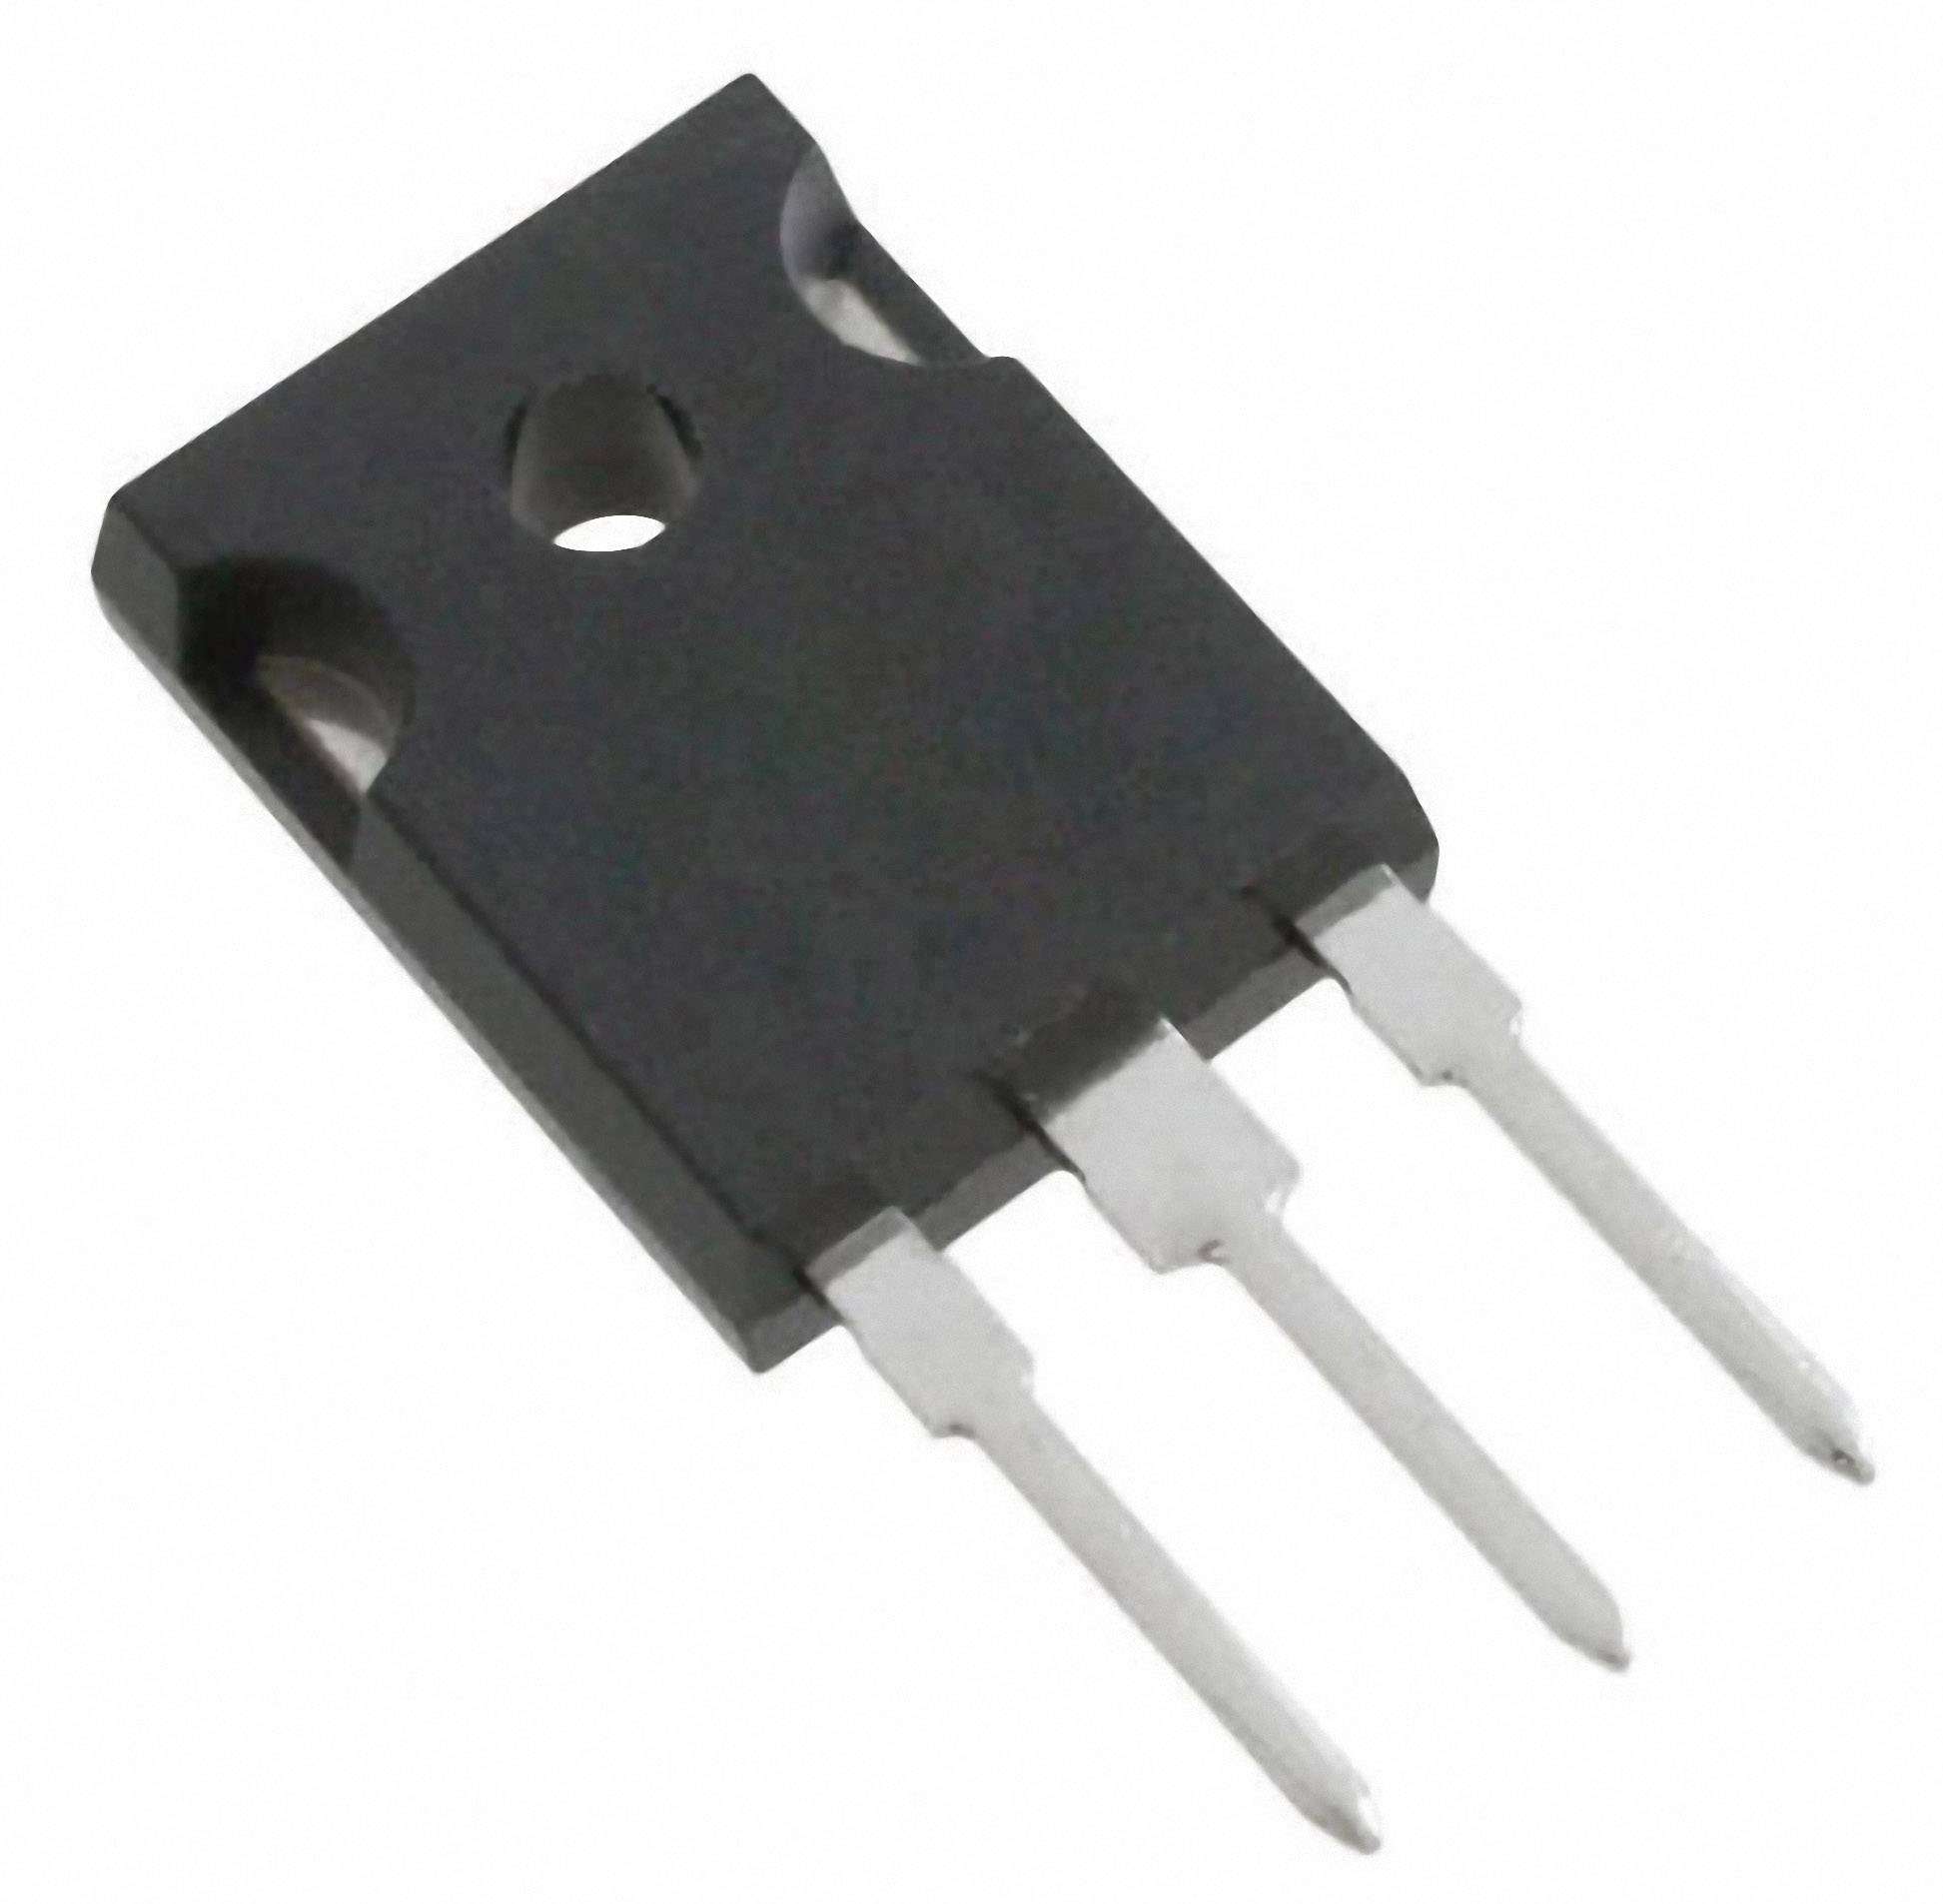 MOSFET Fairchild Semiconductor N kanál N-CH 150V HUF75852G3 TO-247-3 FSC